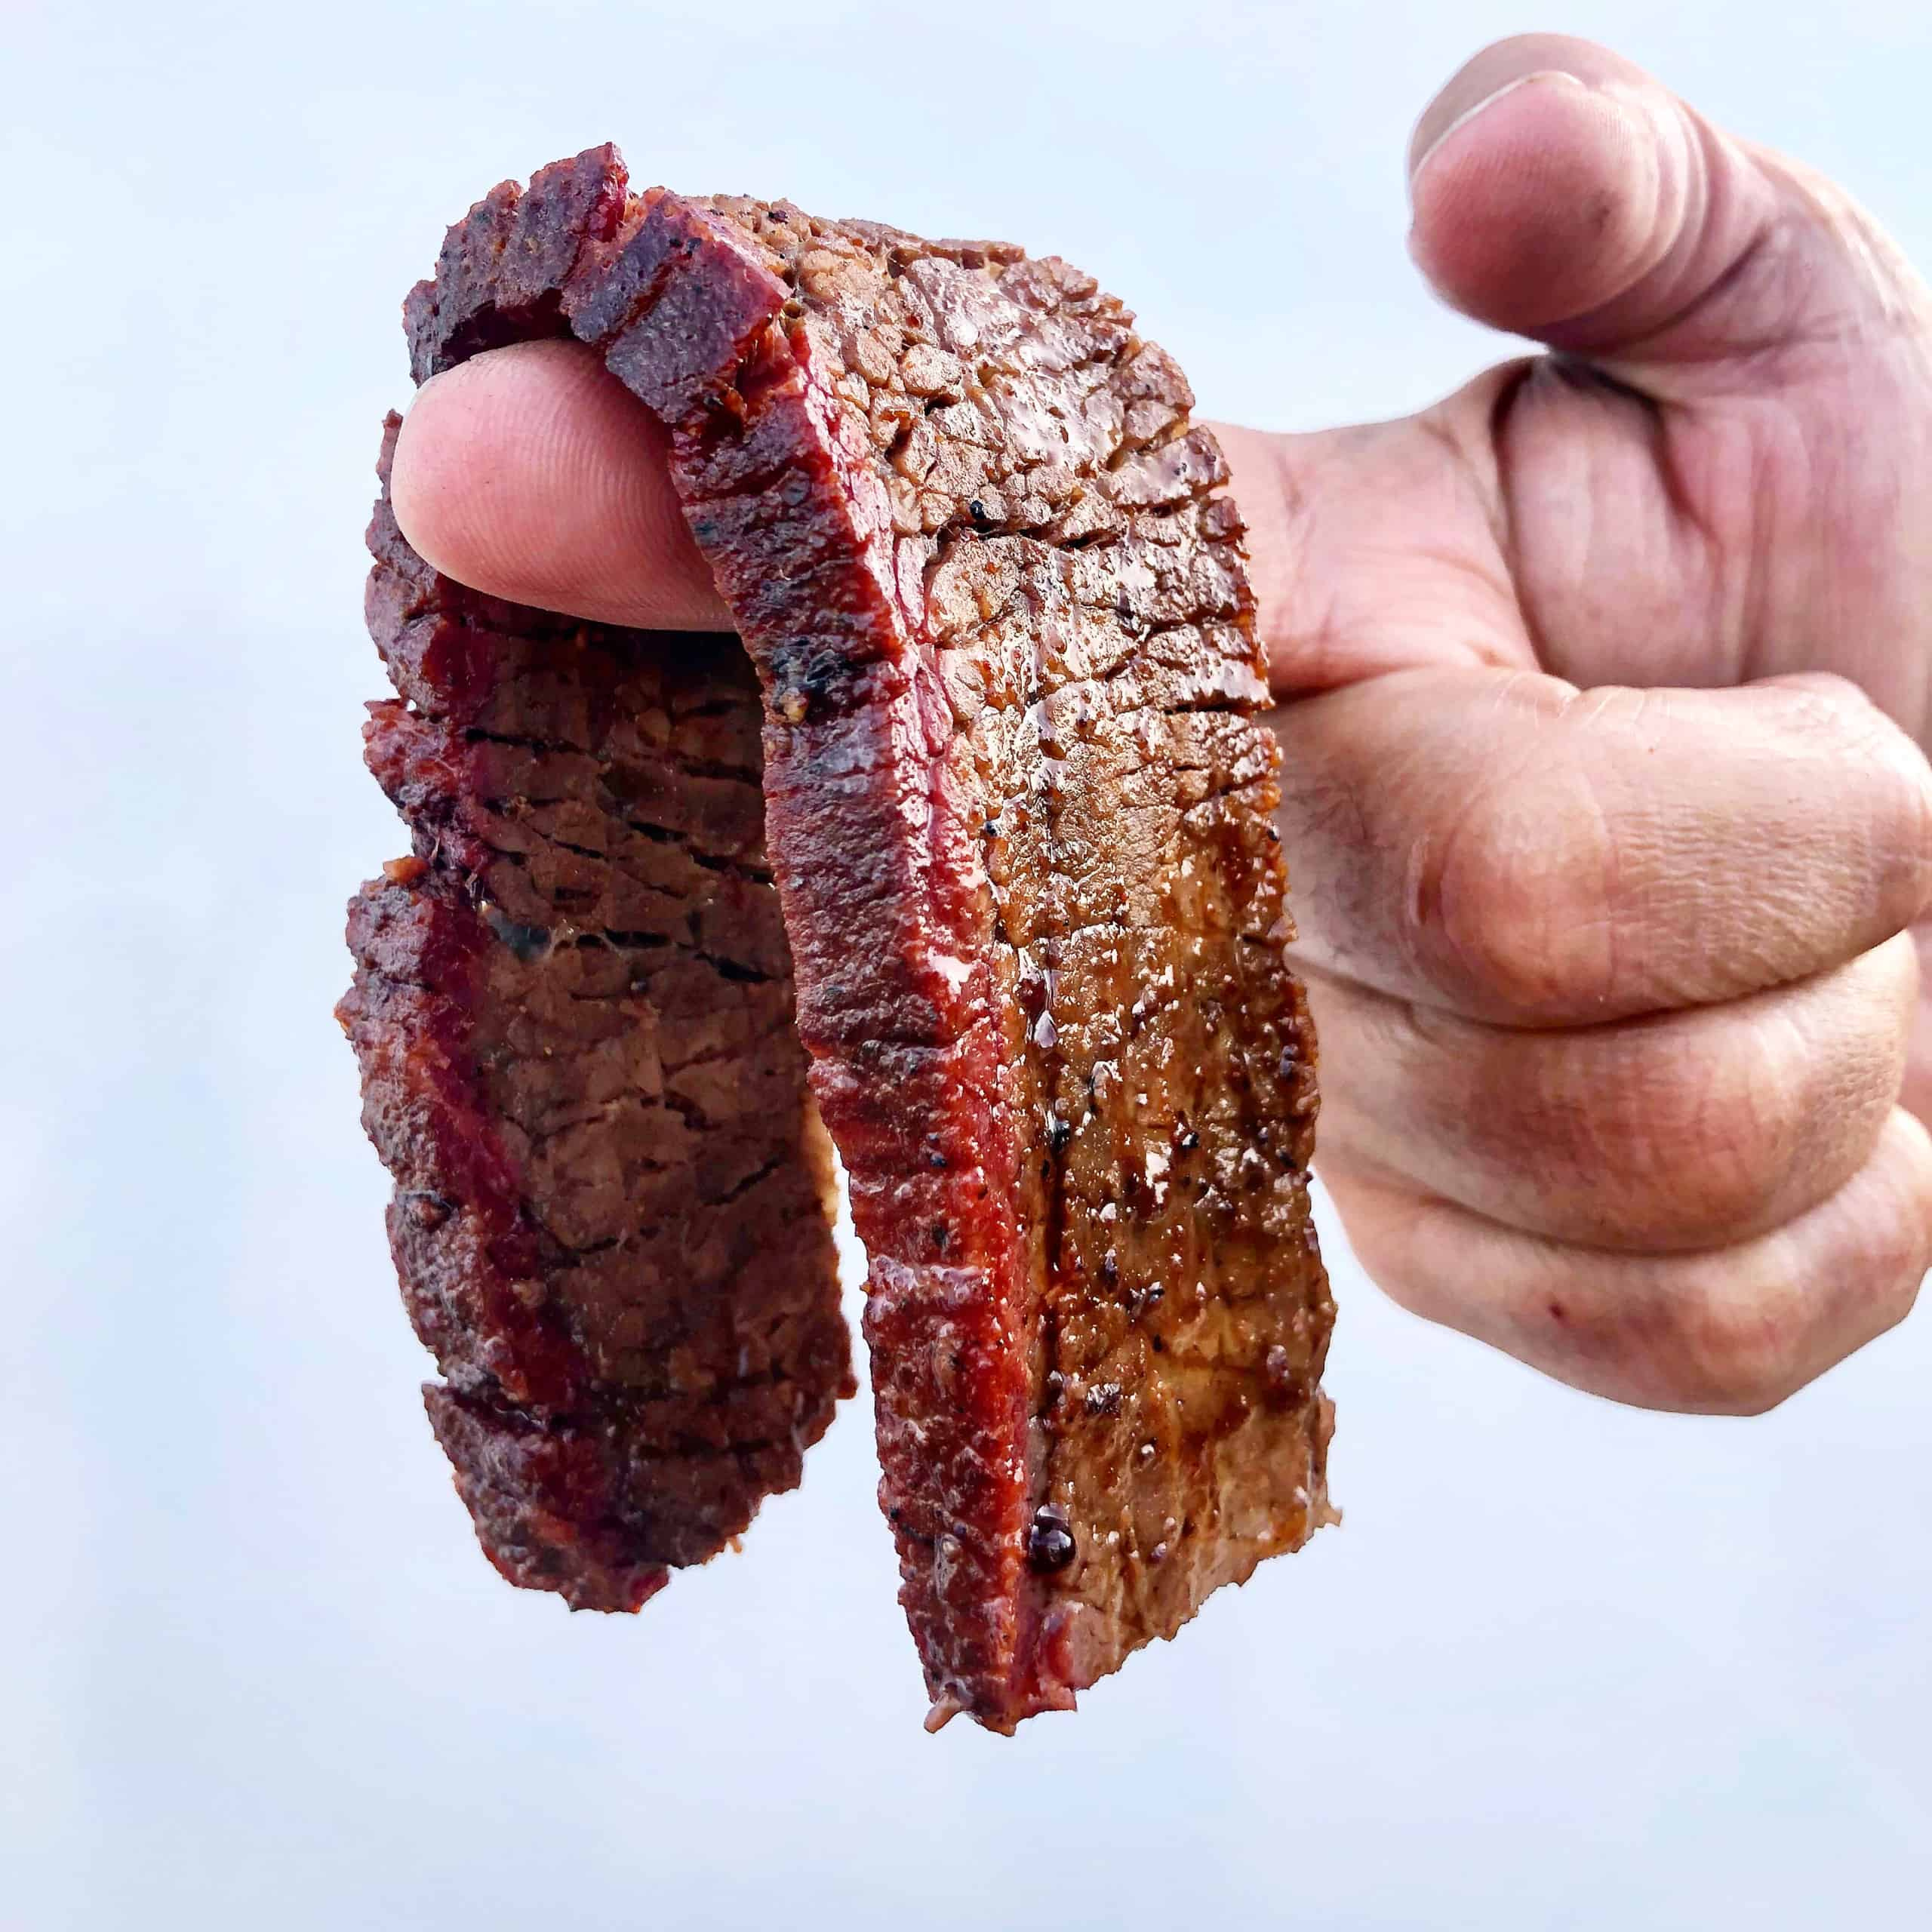 thick slice of smoked brisket draped over finger